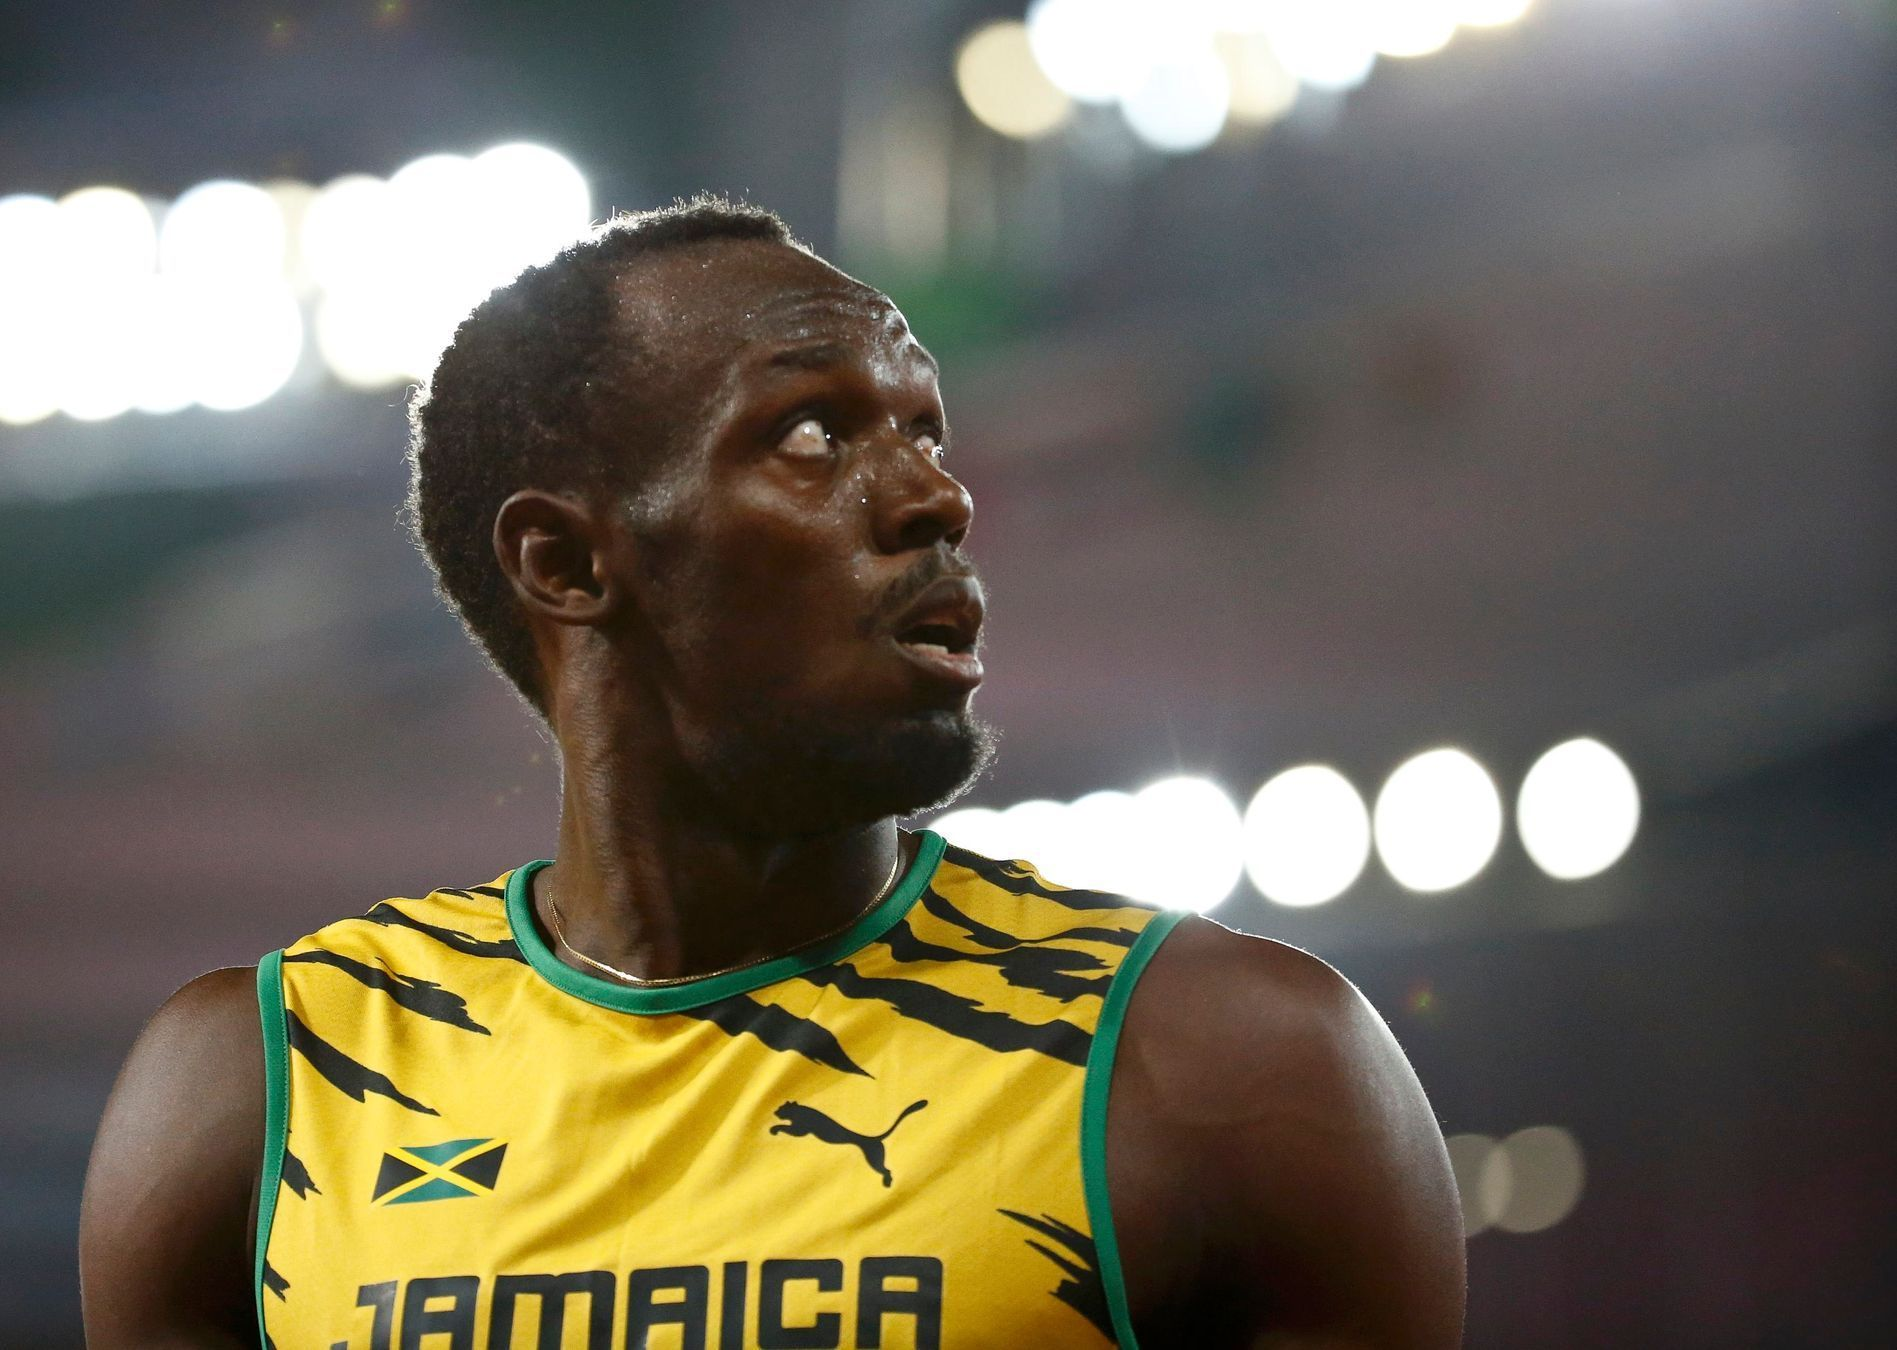 MS v atletice 2015, 100 m: Usain Bolt